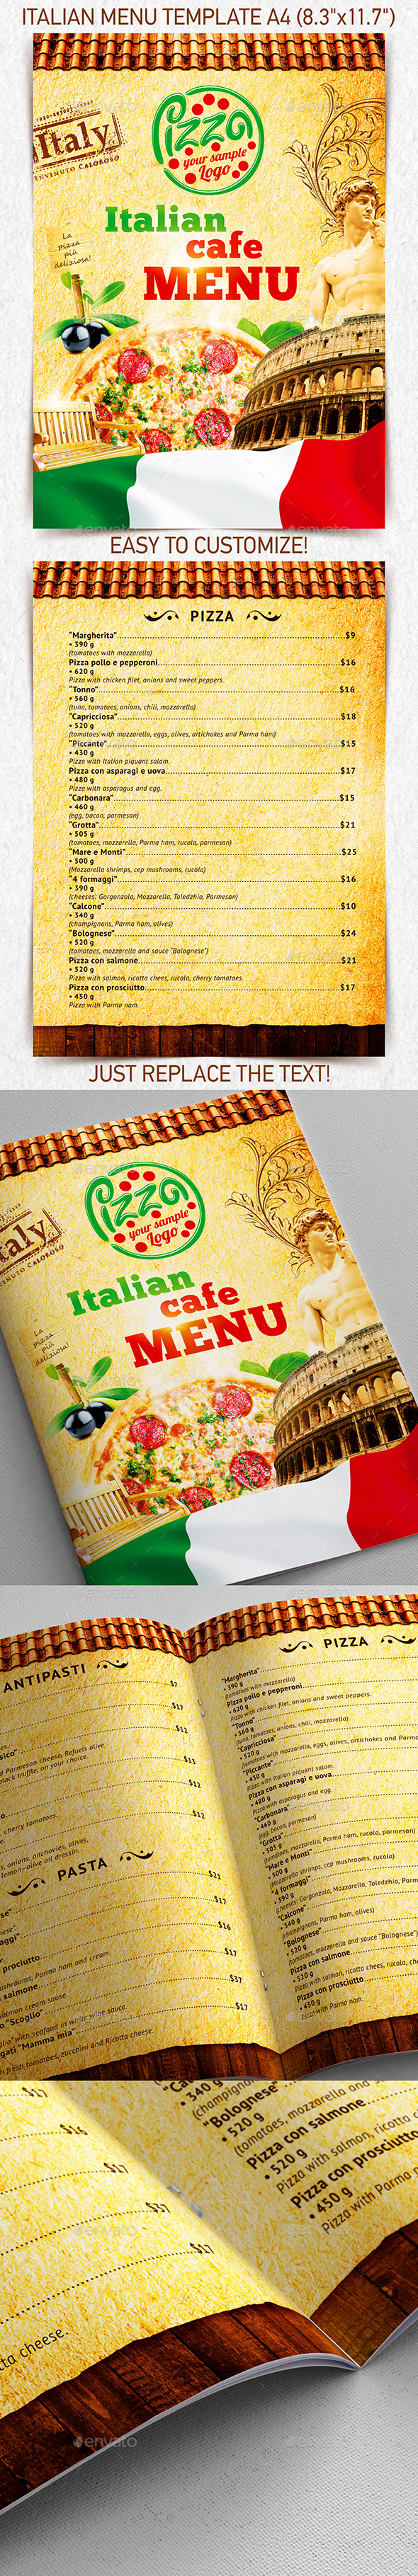 Italian Menu Template vol.2 - Food Menus Print Templates